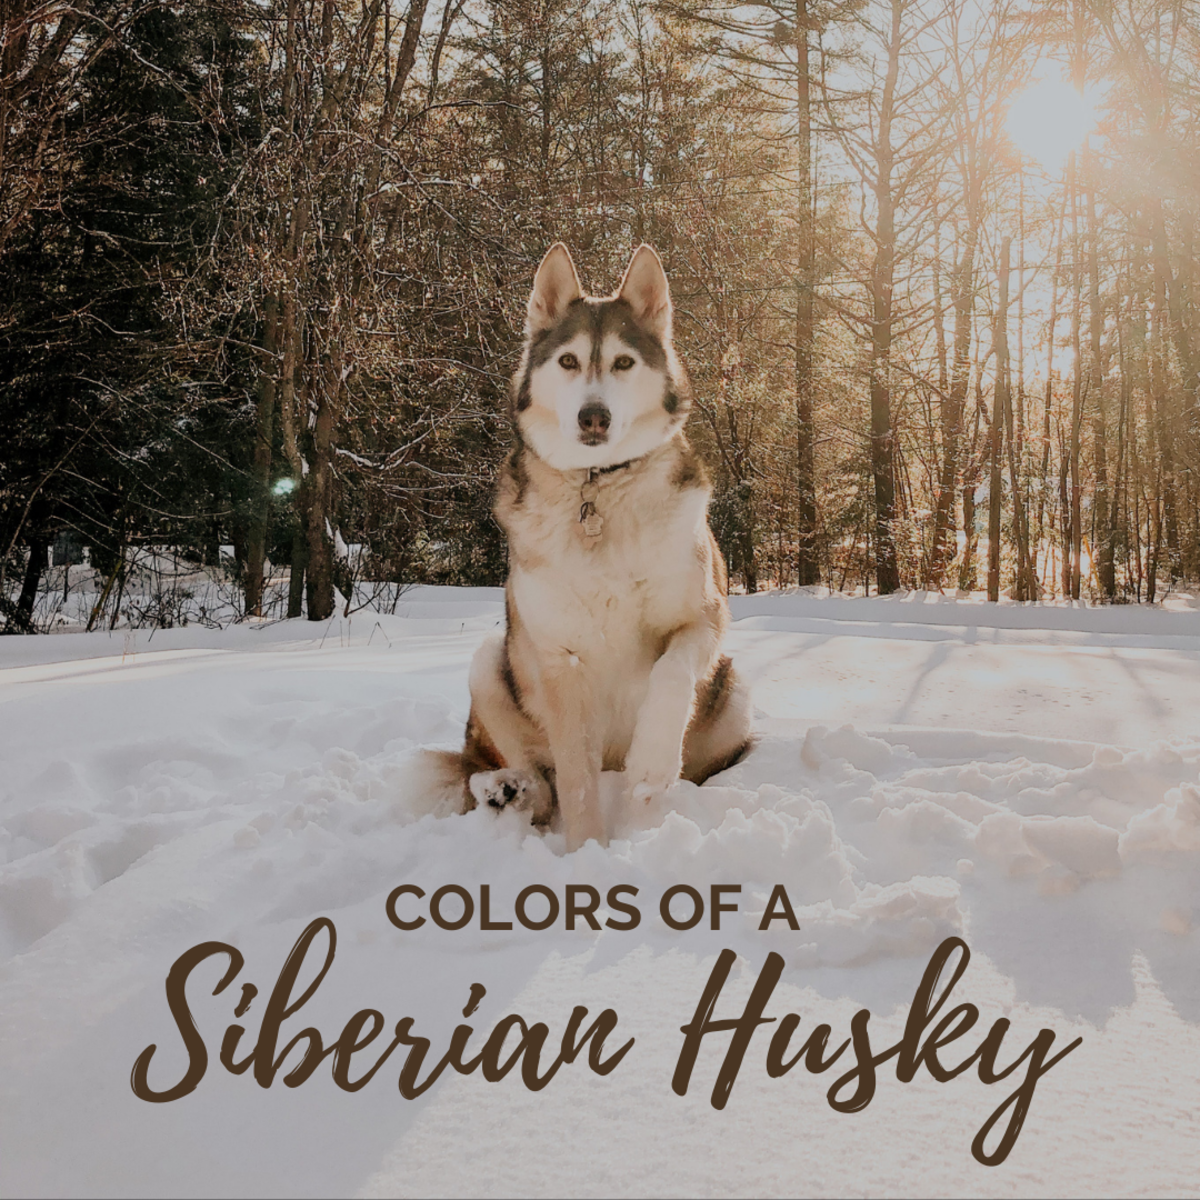 Brown, white, black—Siberian Huskies come in a wide range of colors.